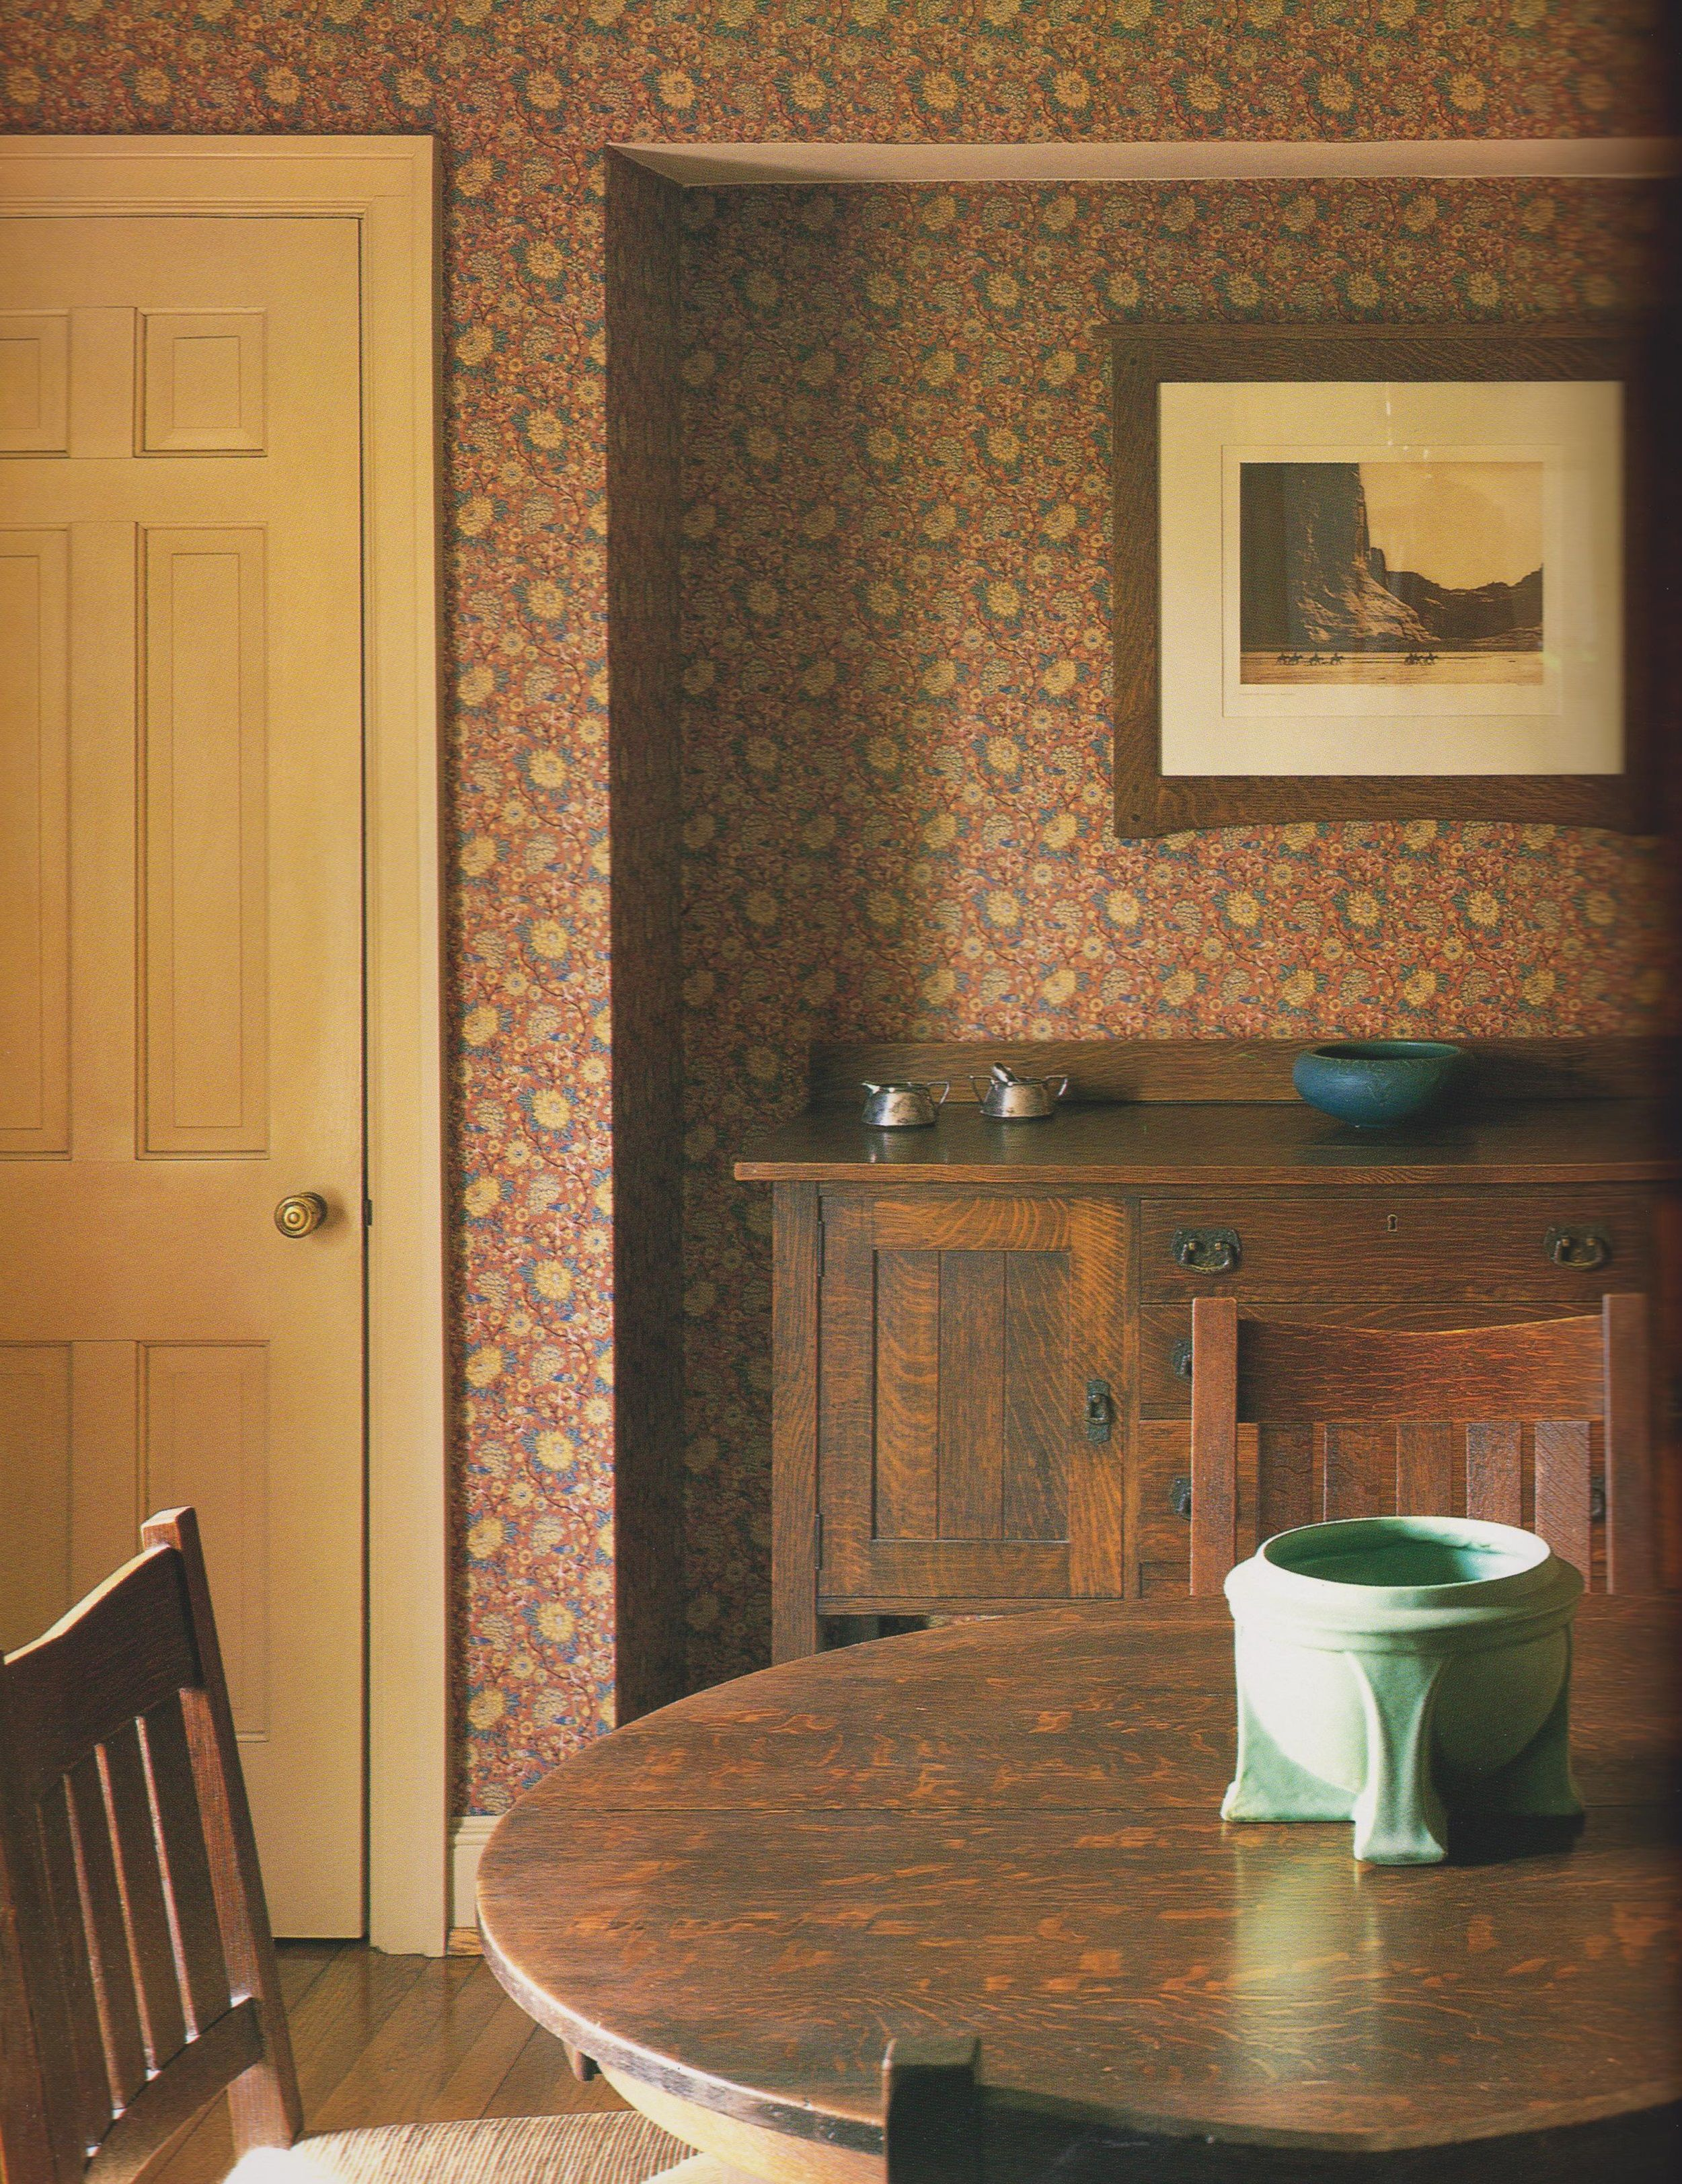 Stickley Dining Room Furniture: Dining Room With Morris & Co. Wallpaper